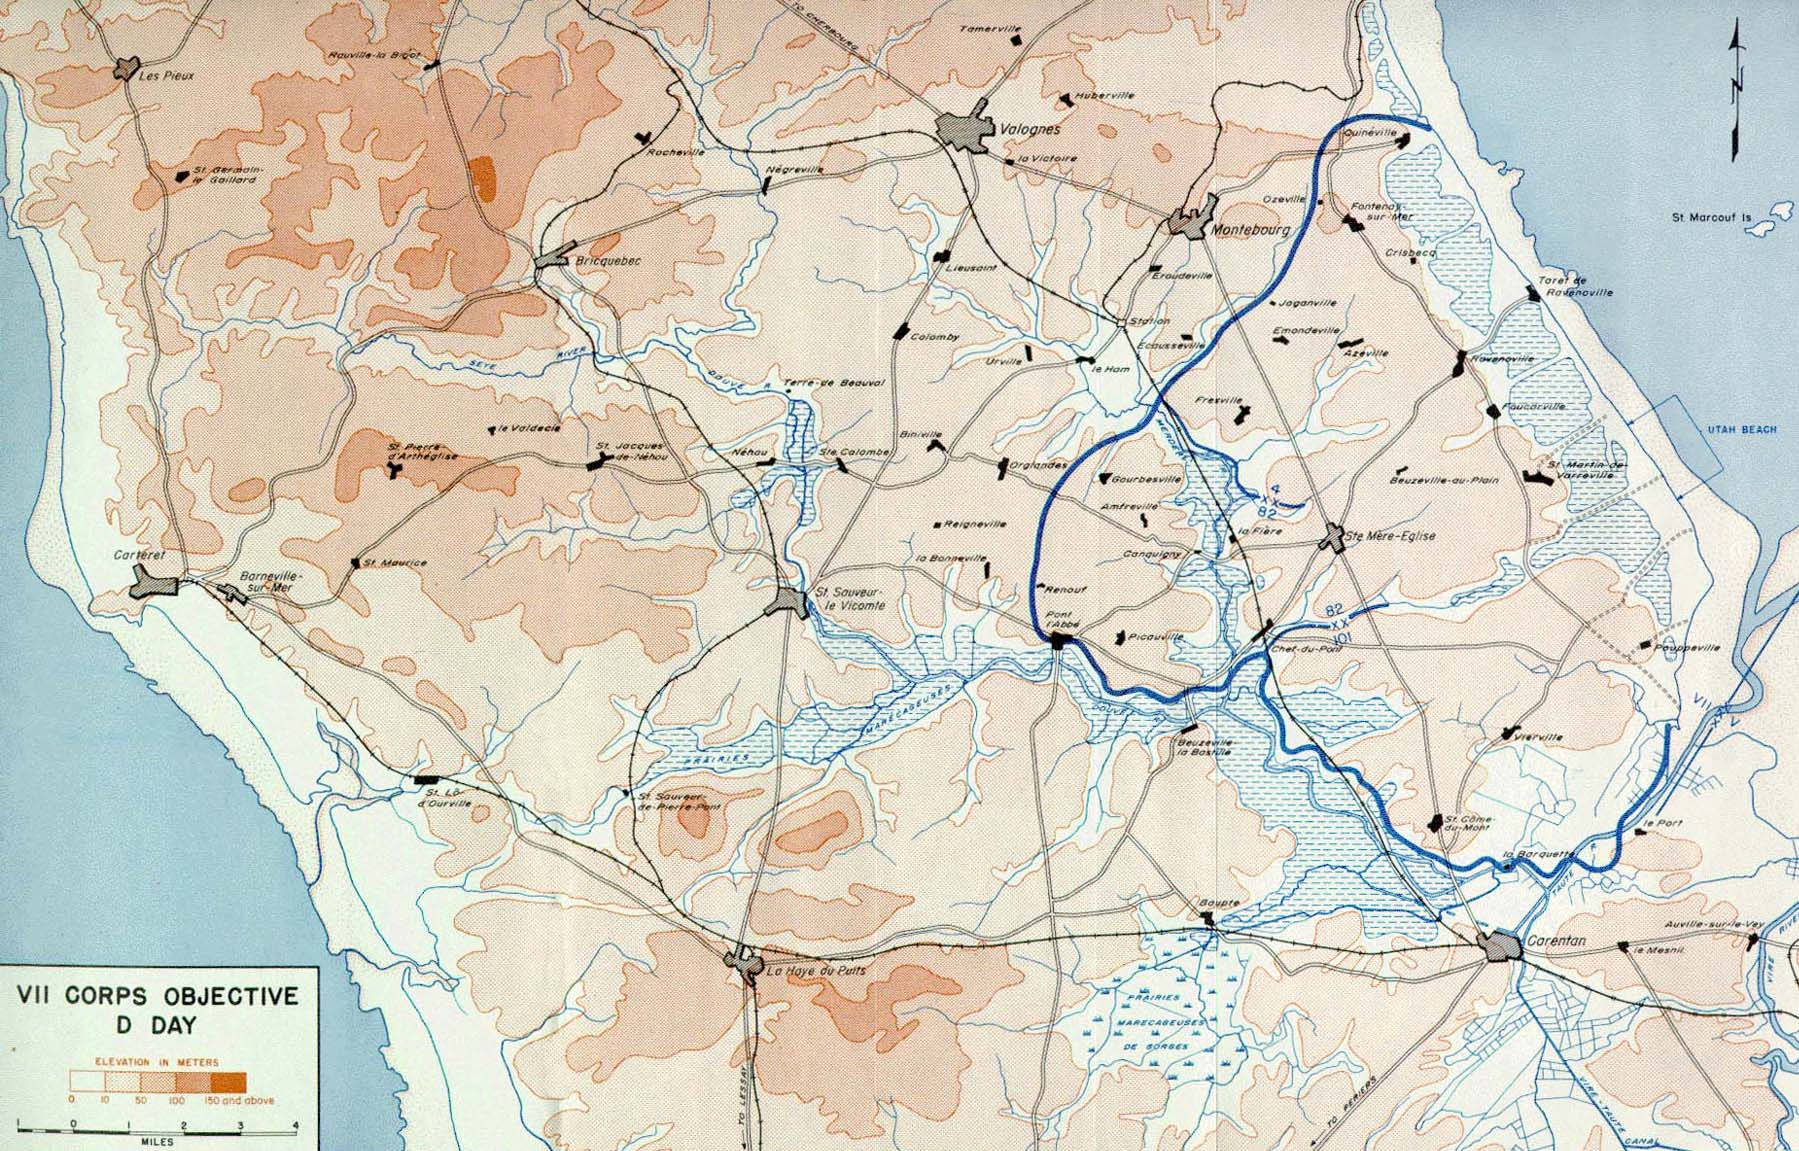 vii corps objective d day